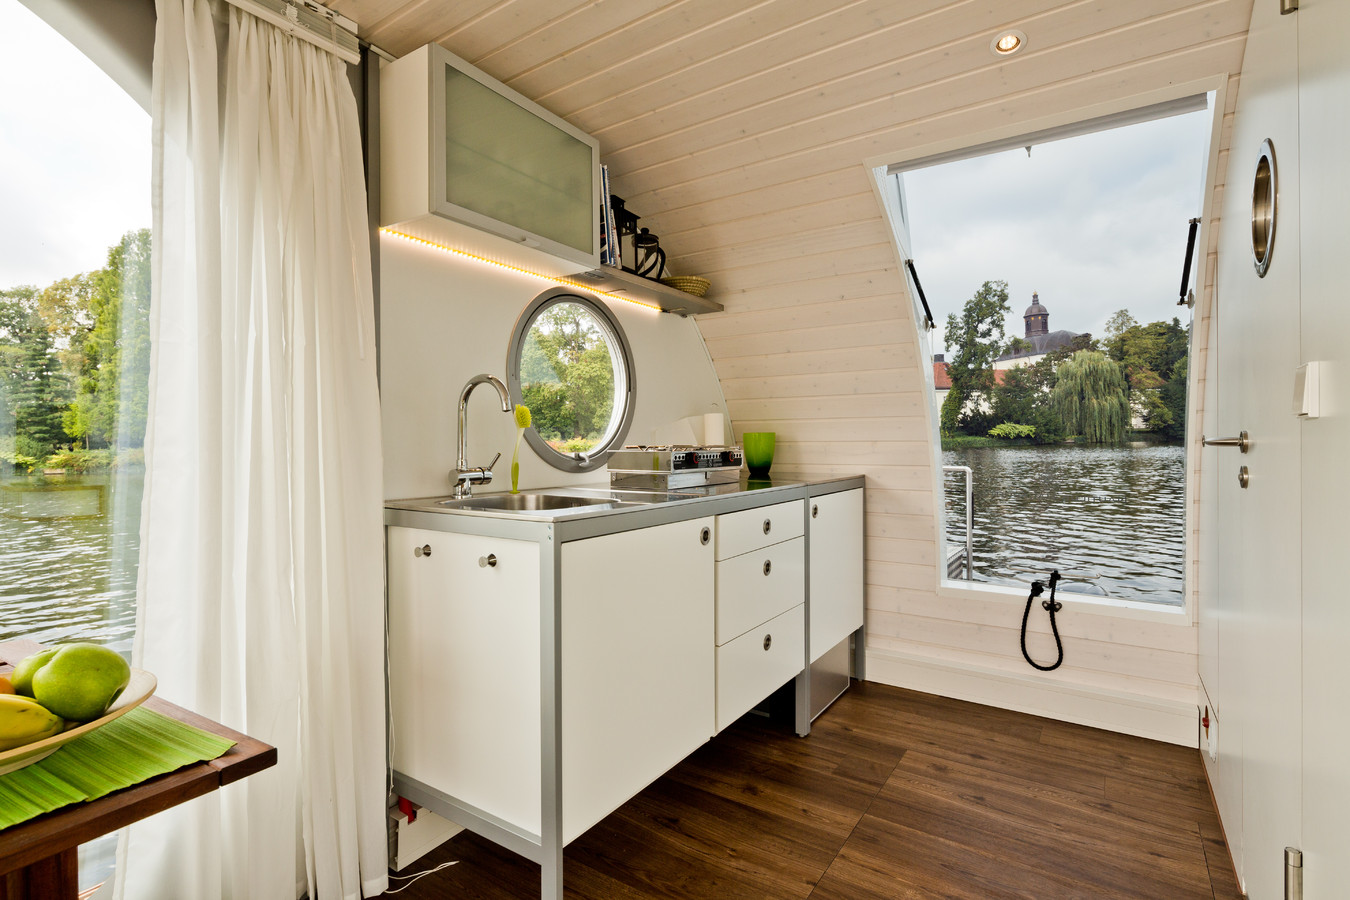 nautilus hausbootcharter hausboot mieten in berlin brandenburg und an der m ritz. Black Bedroom Furniture Sets. Home Design Ideas